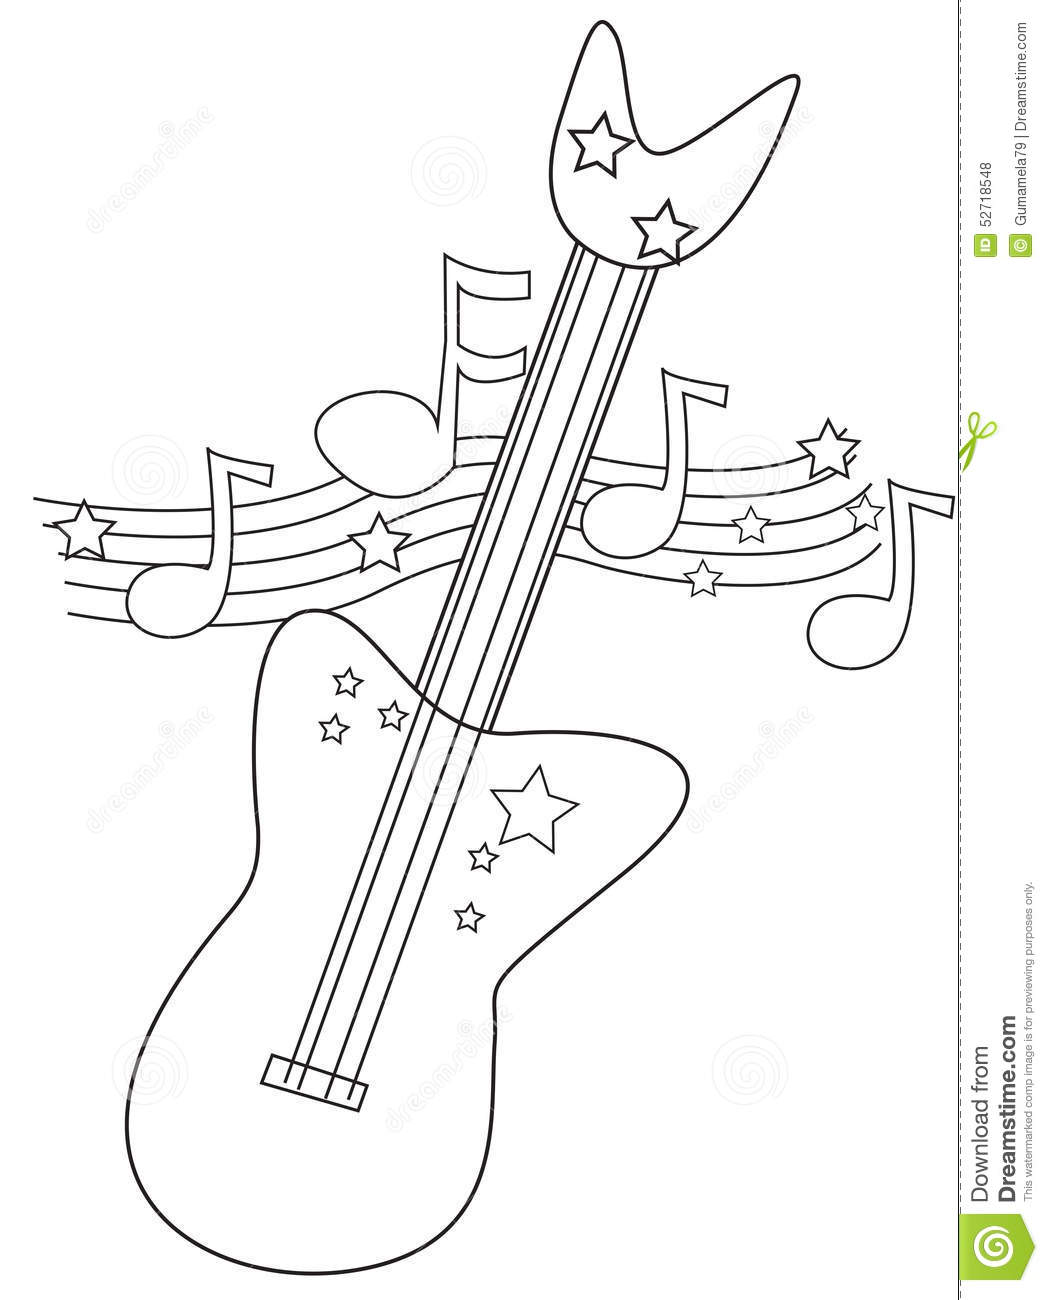 electric guitar coloring page stock illustration